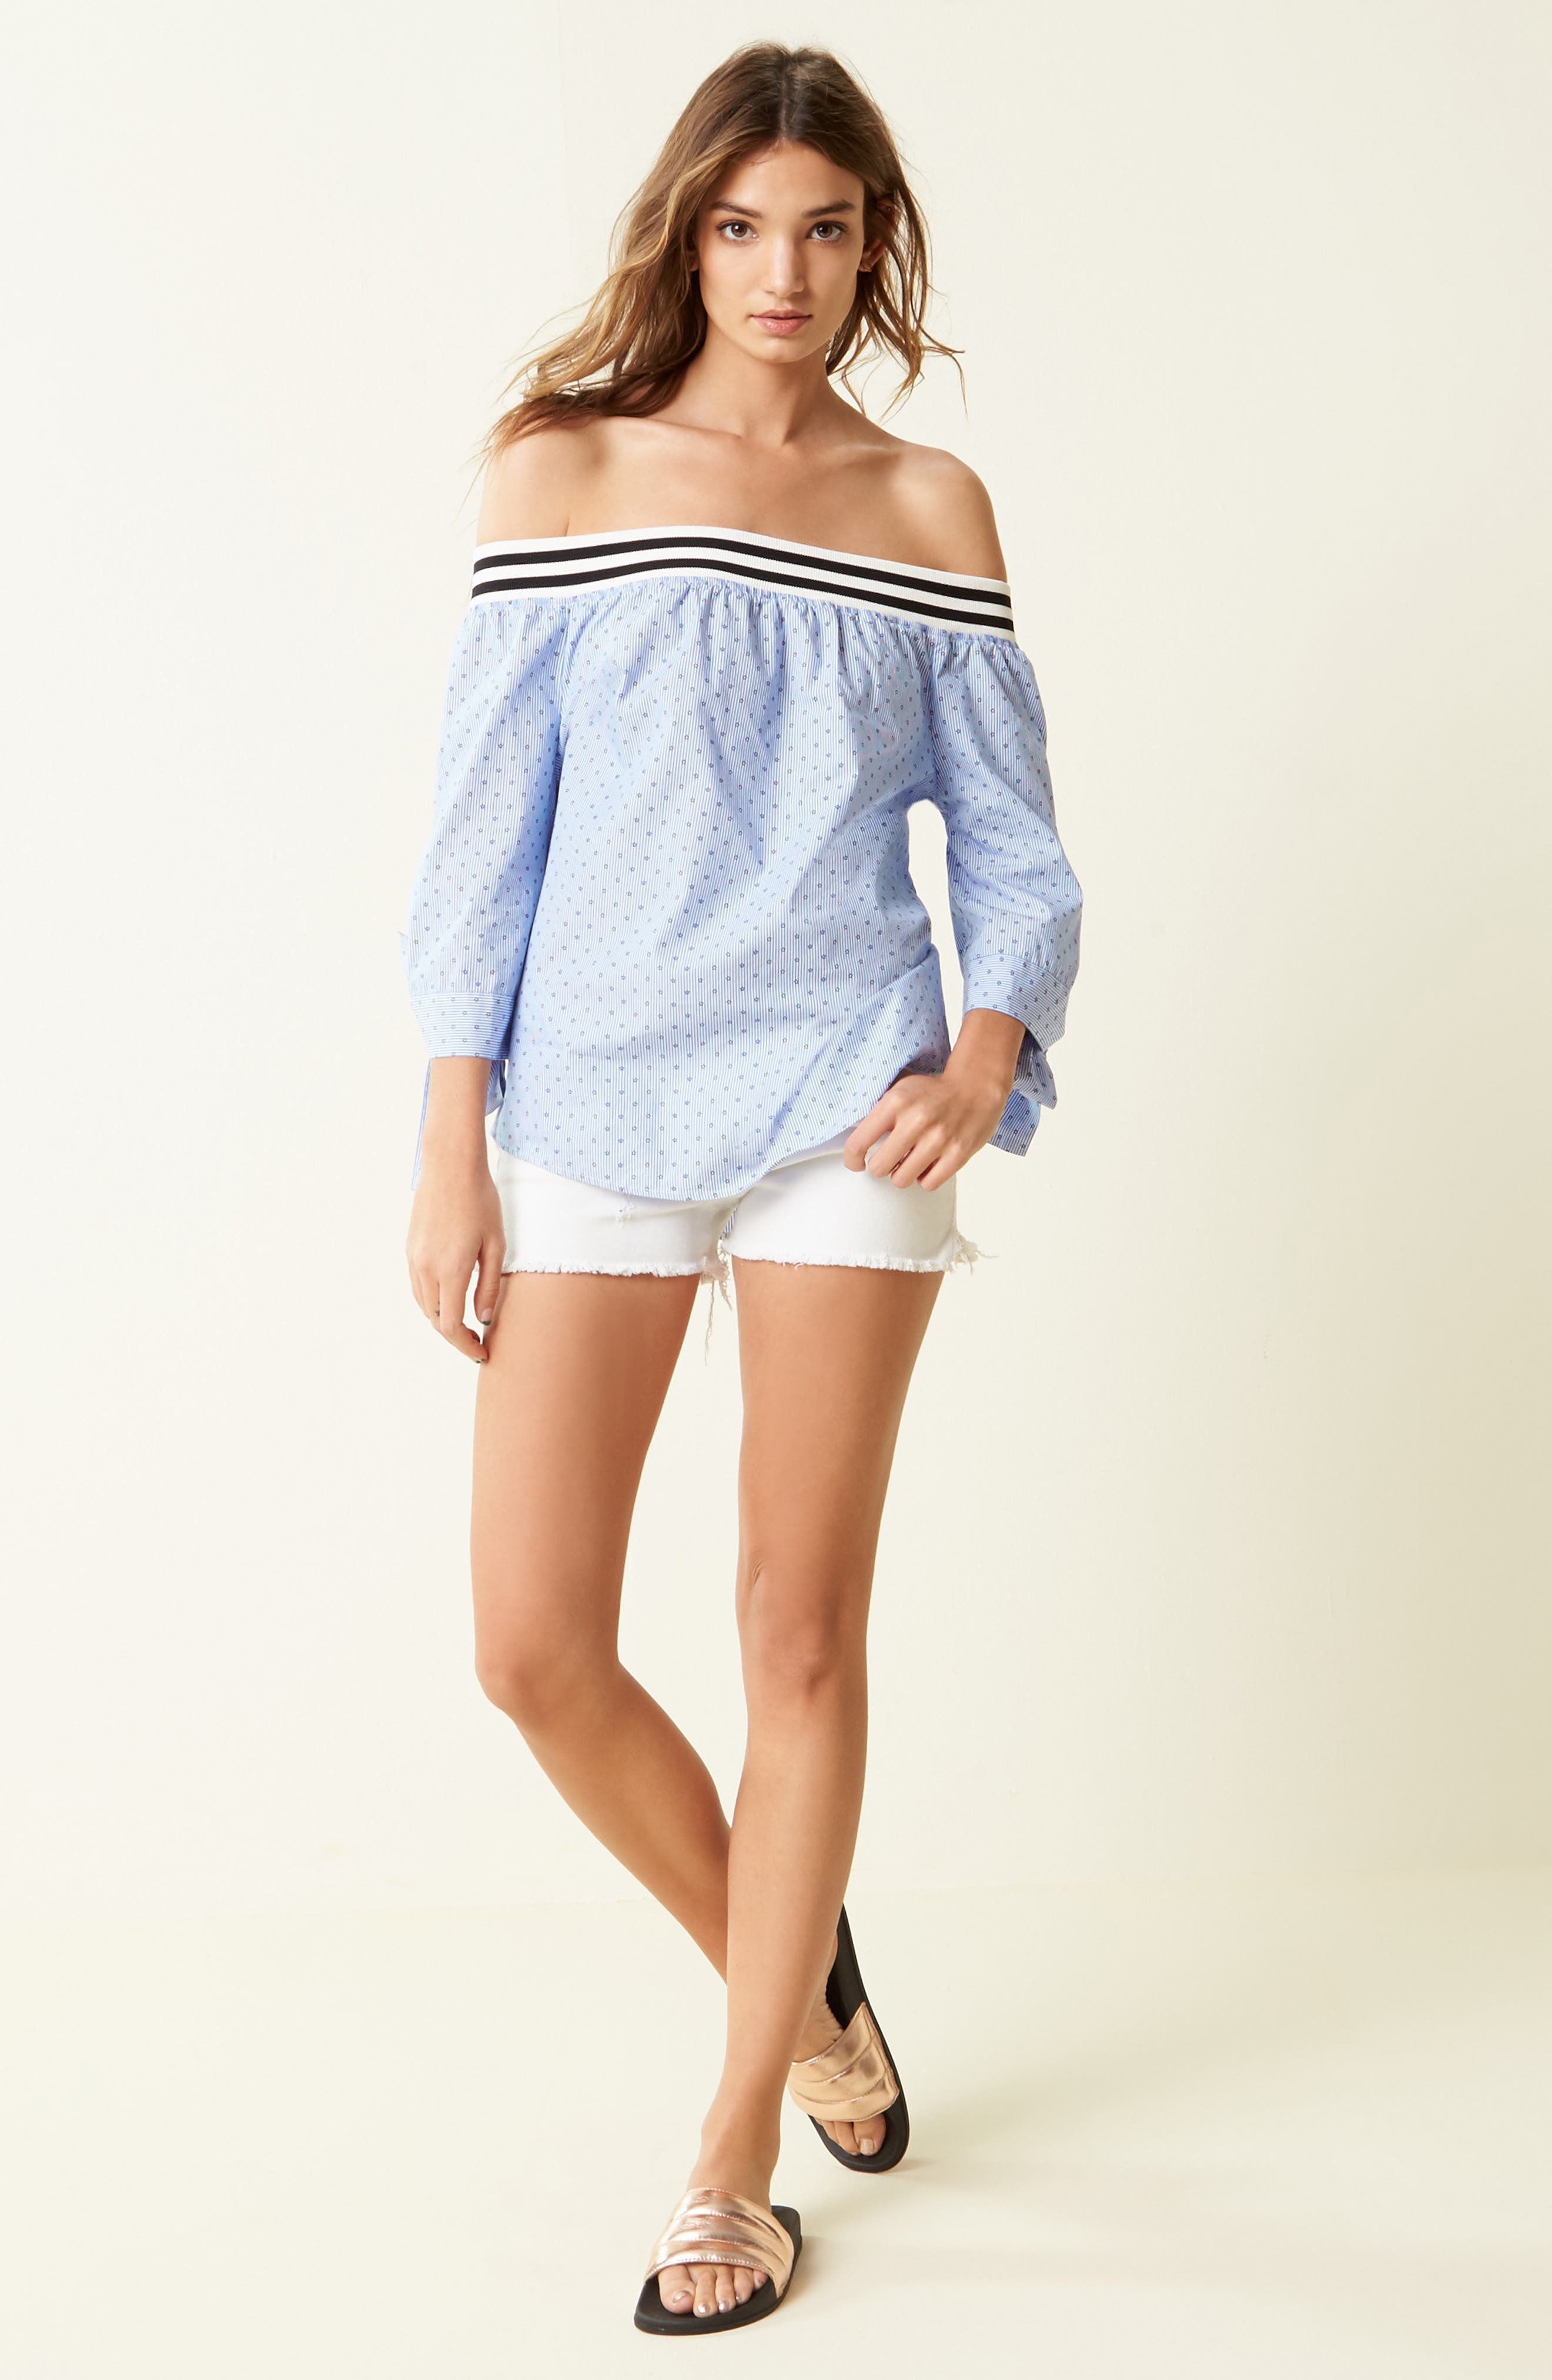 BLANKNYC Top & STS Blue Shorts Outfit with Accessories